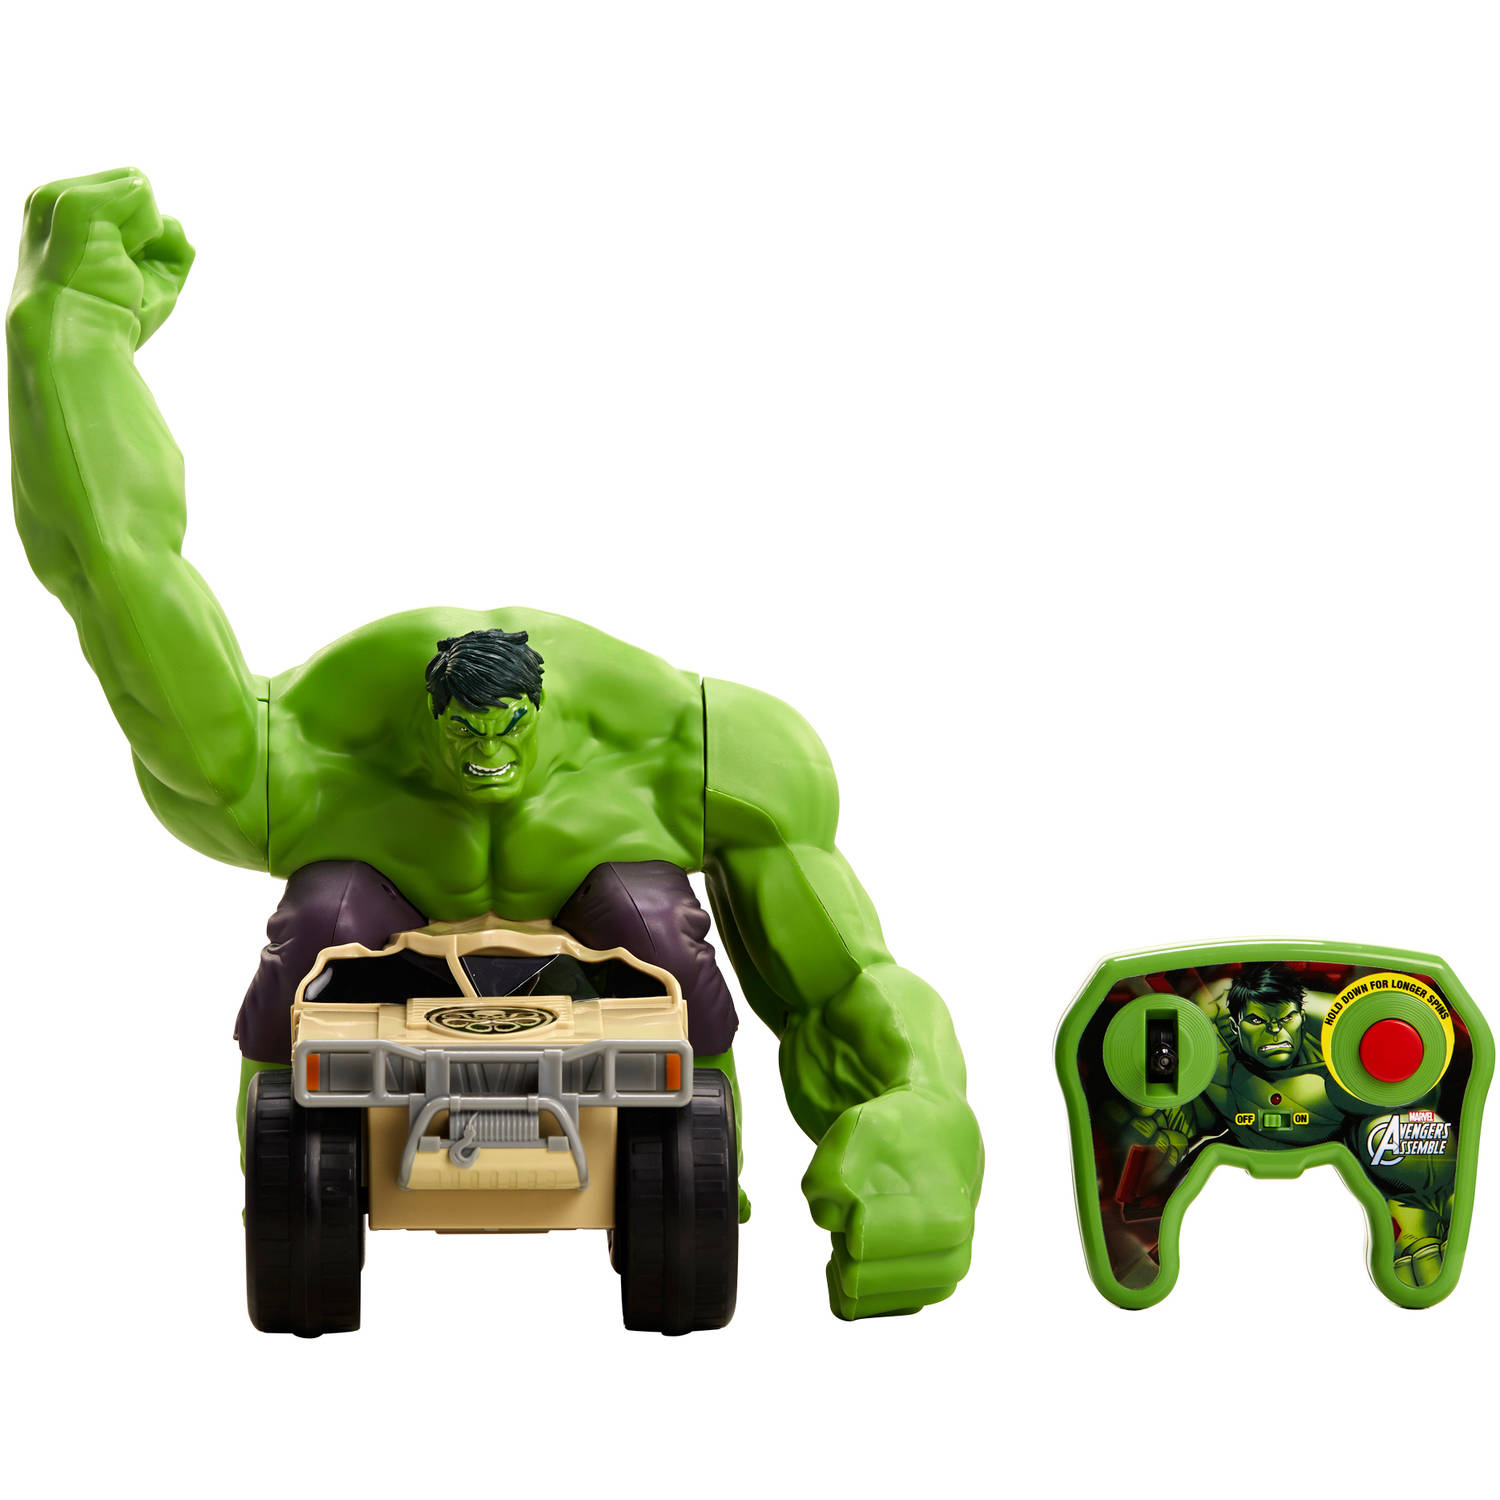 Marvel RC Hulk Smash   Walmart.com